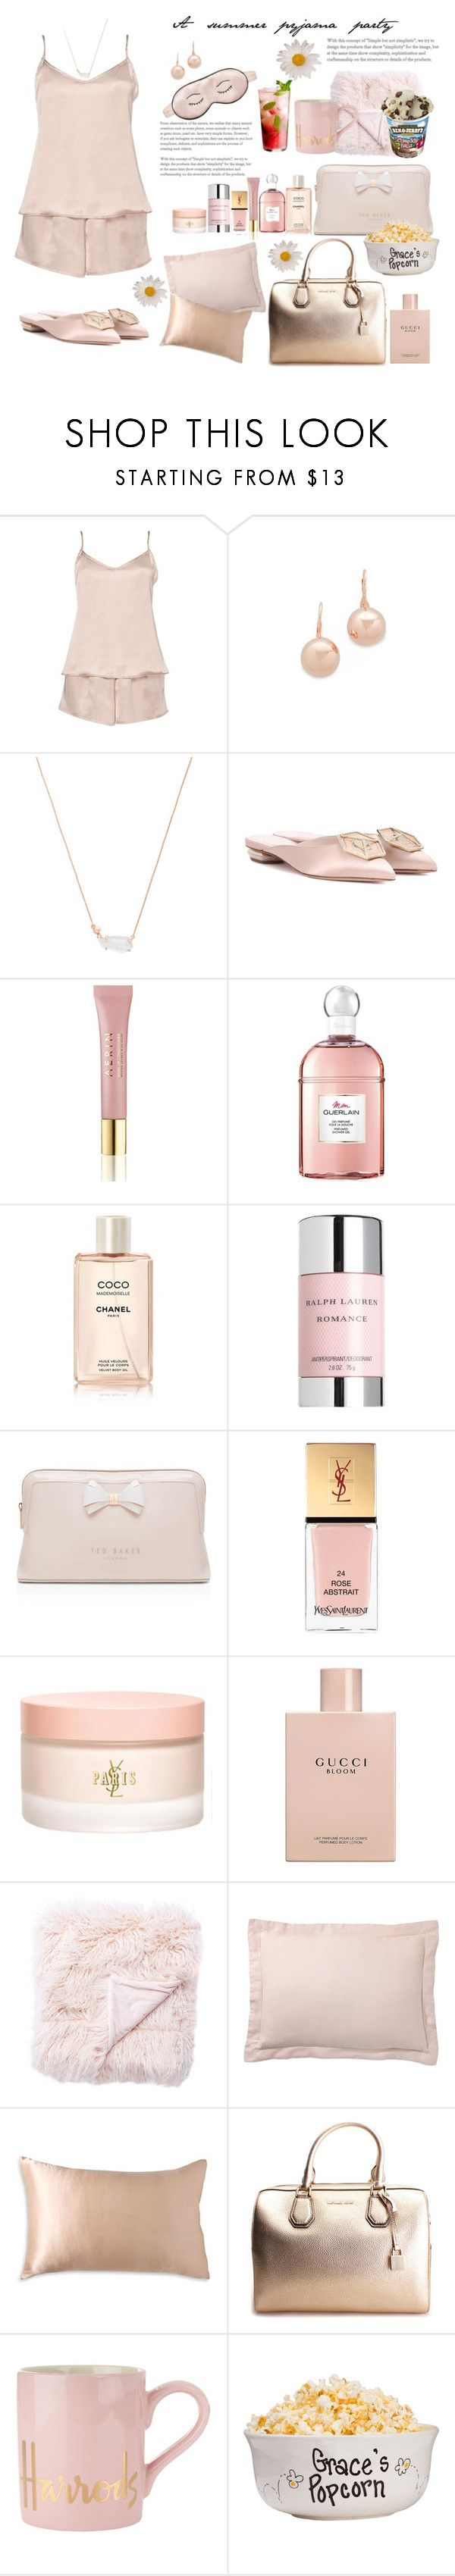 """""""A summer pyjama party 3 🌸"""" by l-bourdon ❤ liked on Polyvore featuring Dorothy Perkins, Bronzallure, Kendra Scott, Nicholas Kirkwood, Mary Green, AERIN, Guerlain, Chanel, Ralph Lauren and Ted Baker"""